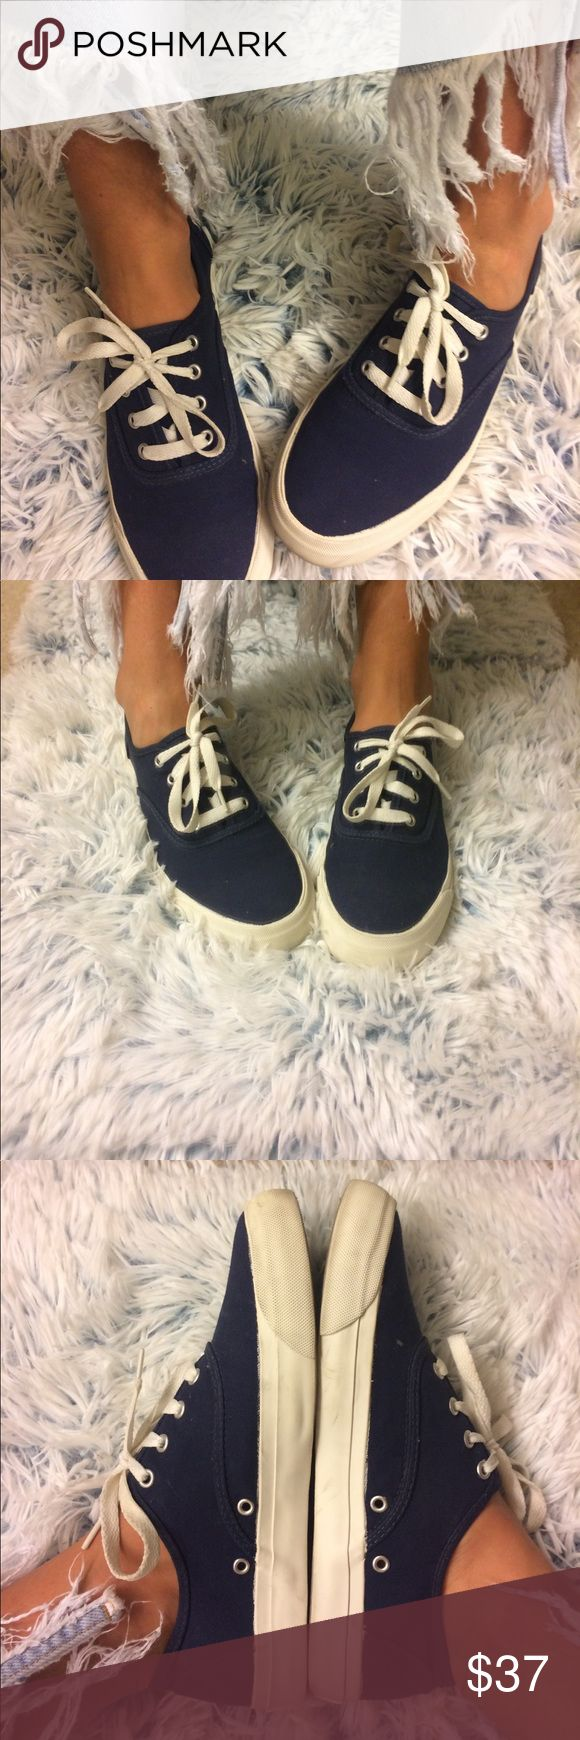 Keds Pro Vintage Style Sneakers Great condition, navy. Super comfortable with the thicker, more stylish sole! Keds Shoes Sneakers